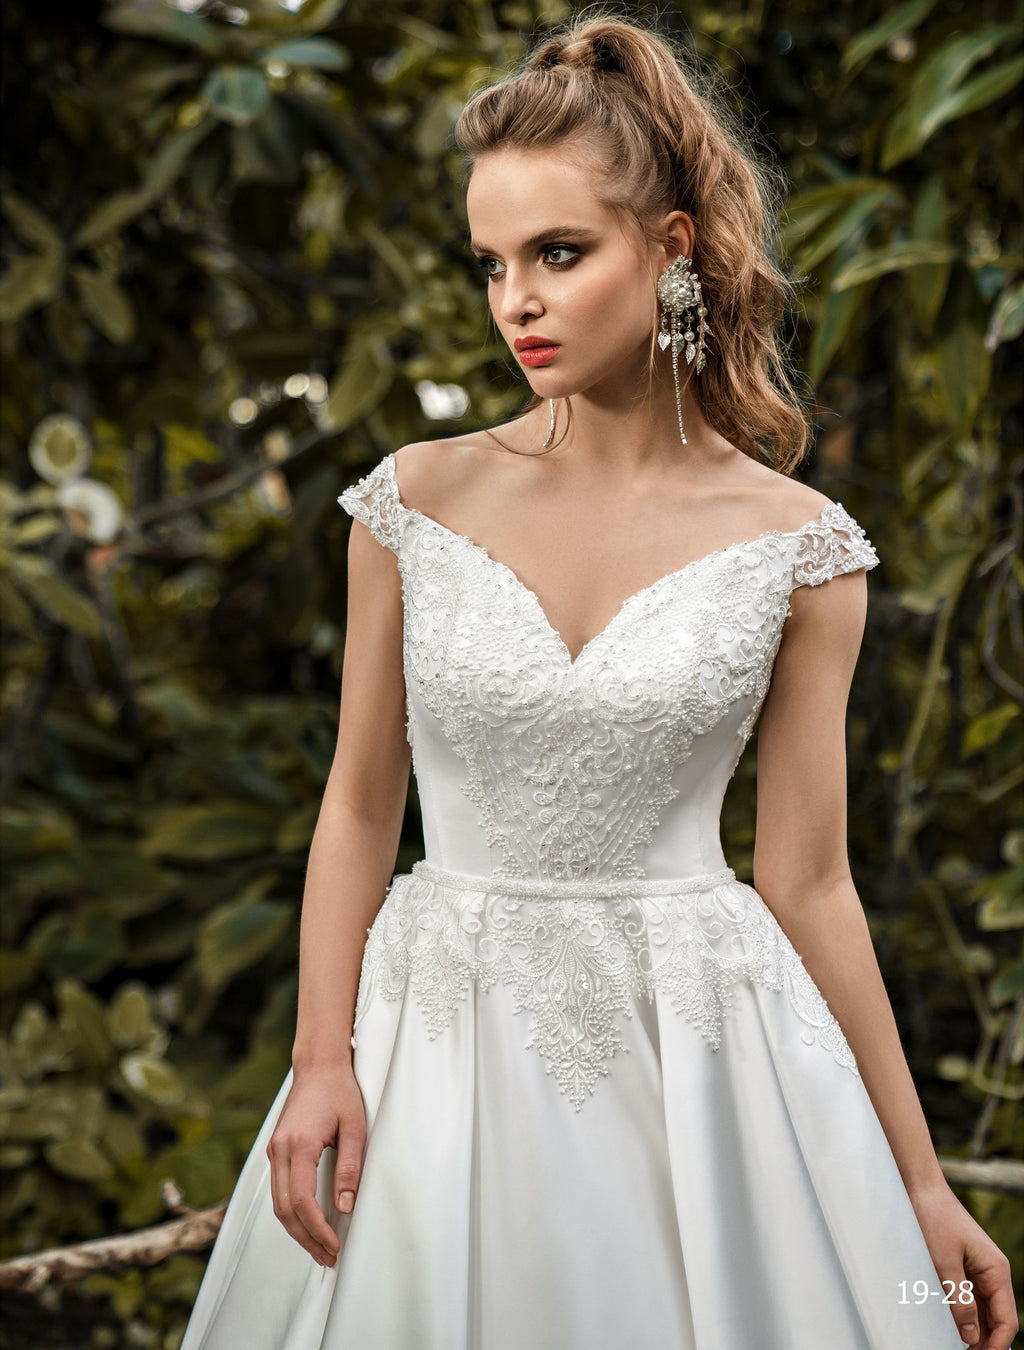 Lidia Wedding Dress